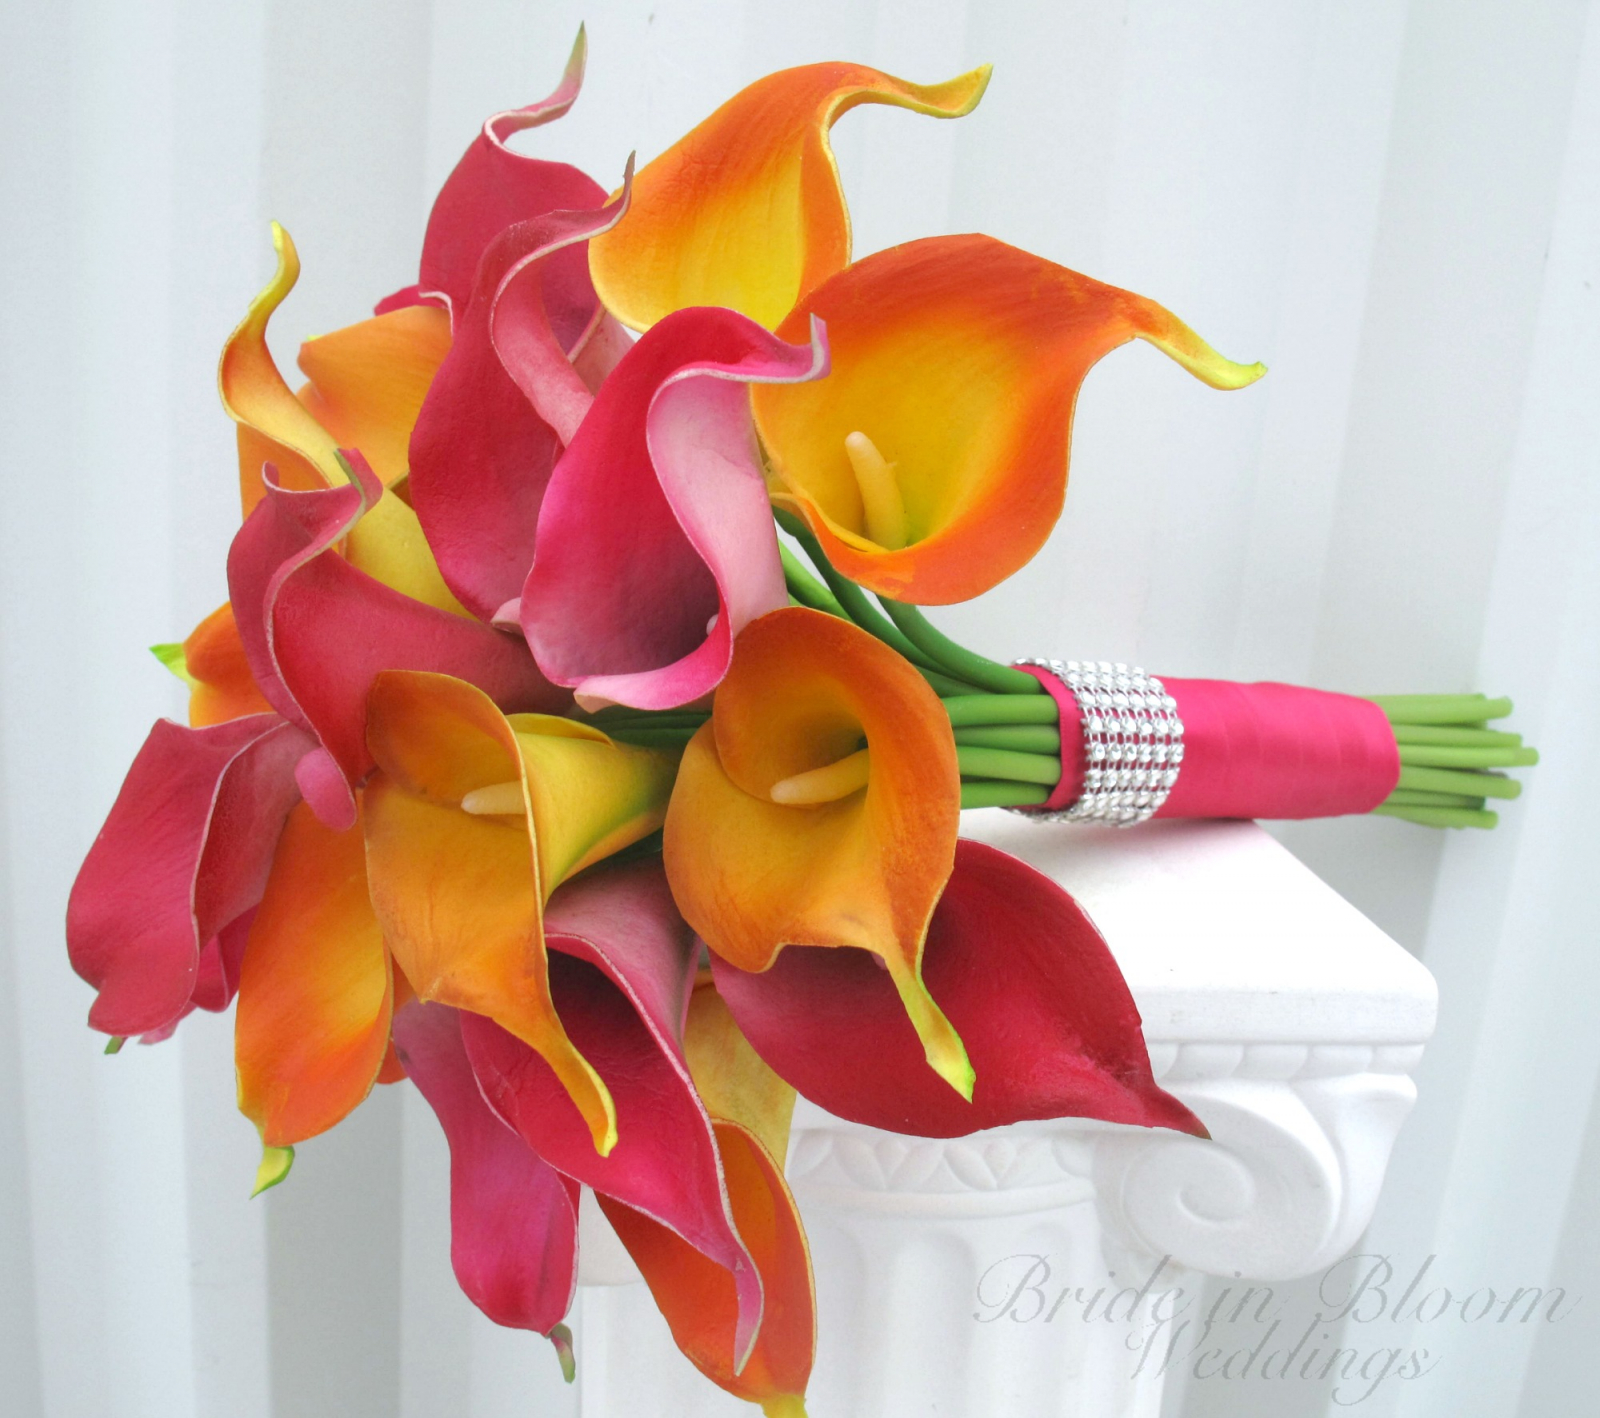 Tropical wedding bouquet real touch calla lily hot pink orange tropical wedding bouquet real touch calla lily hot pink orange mightylinksfo